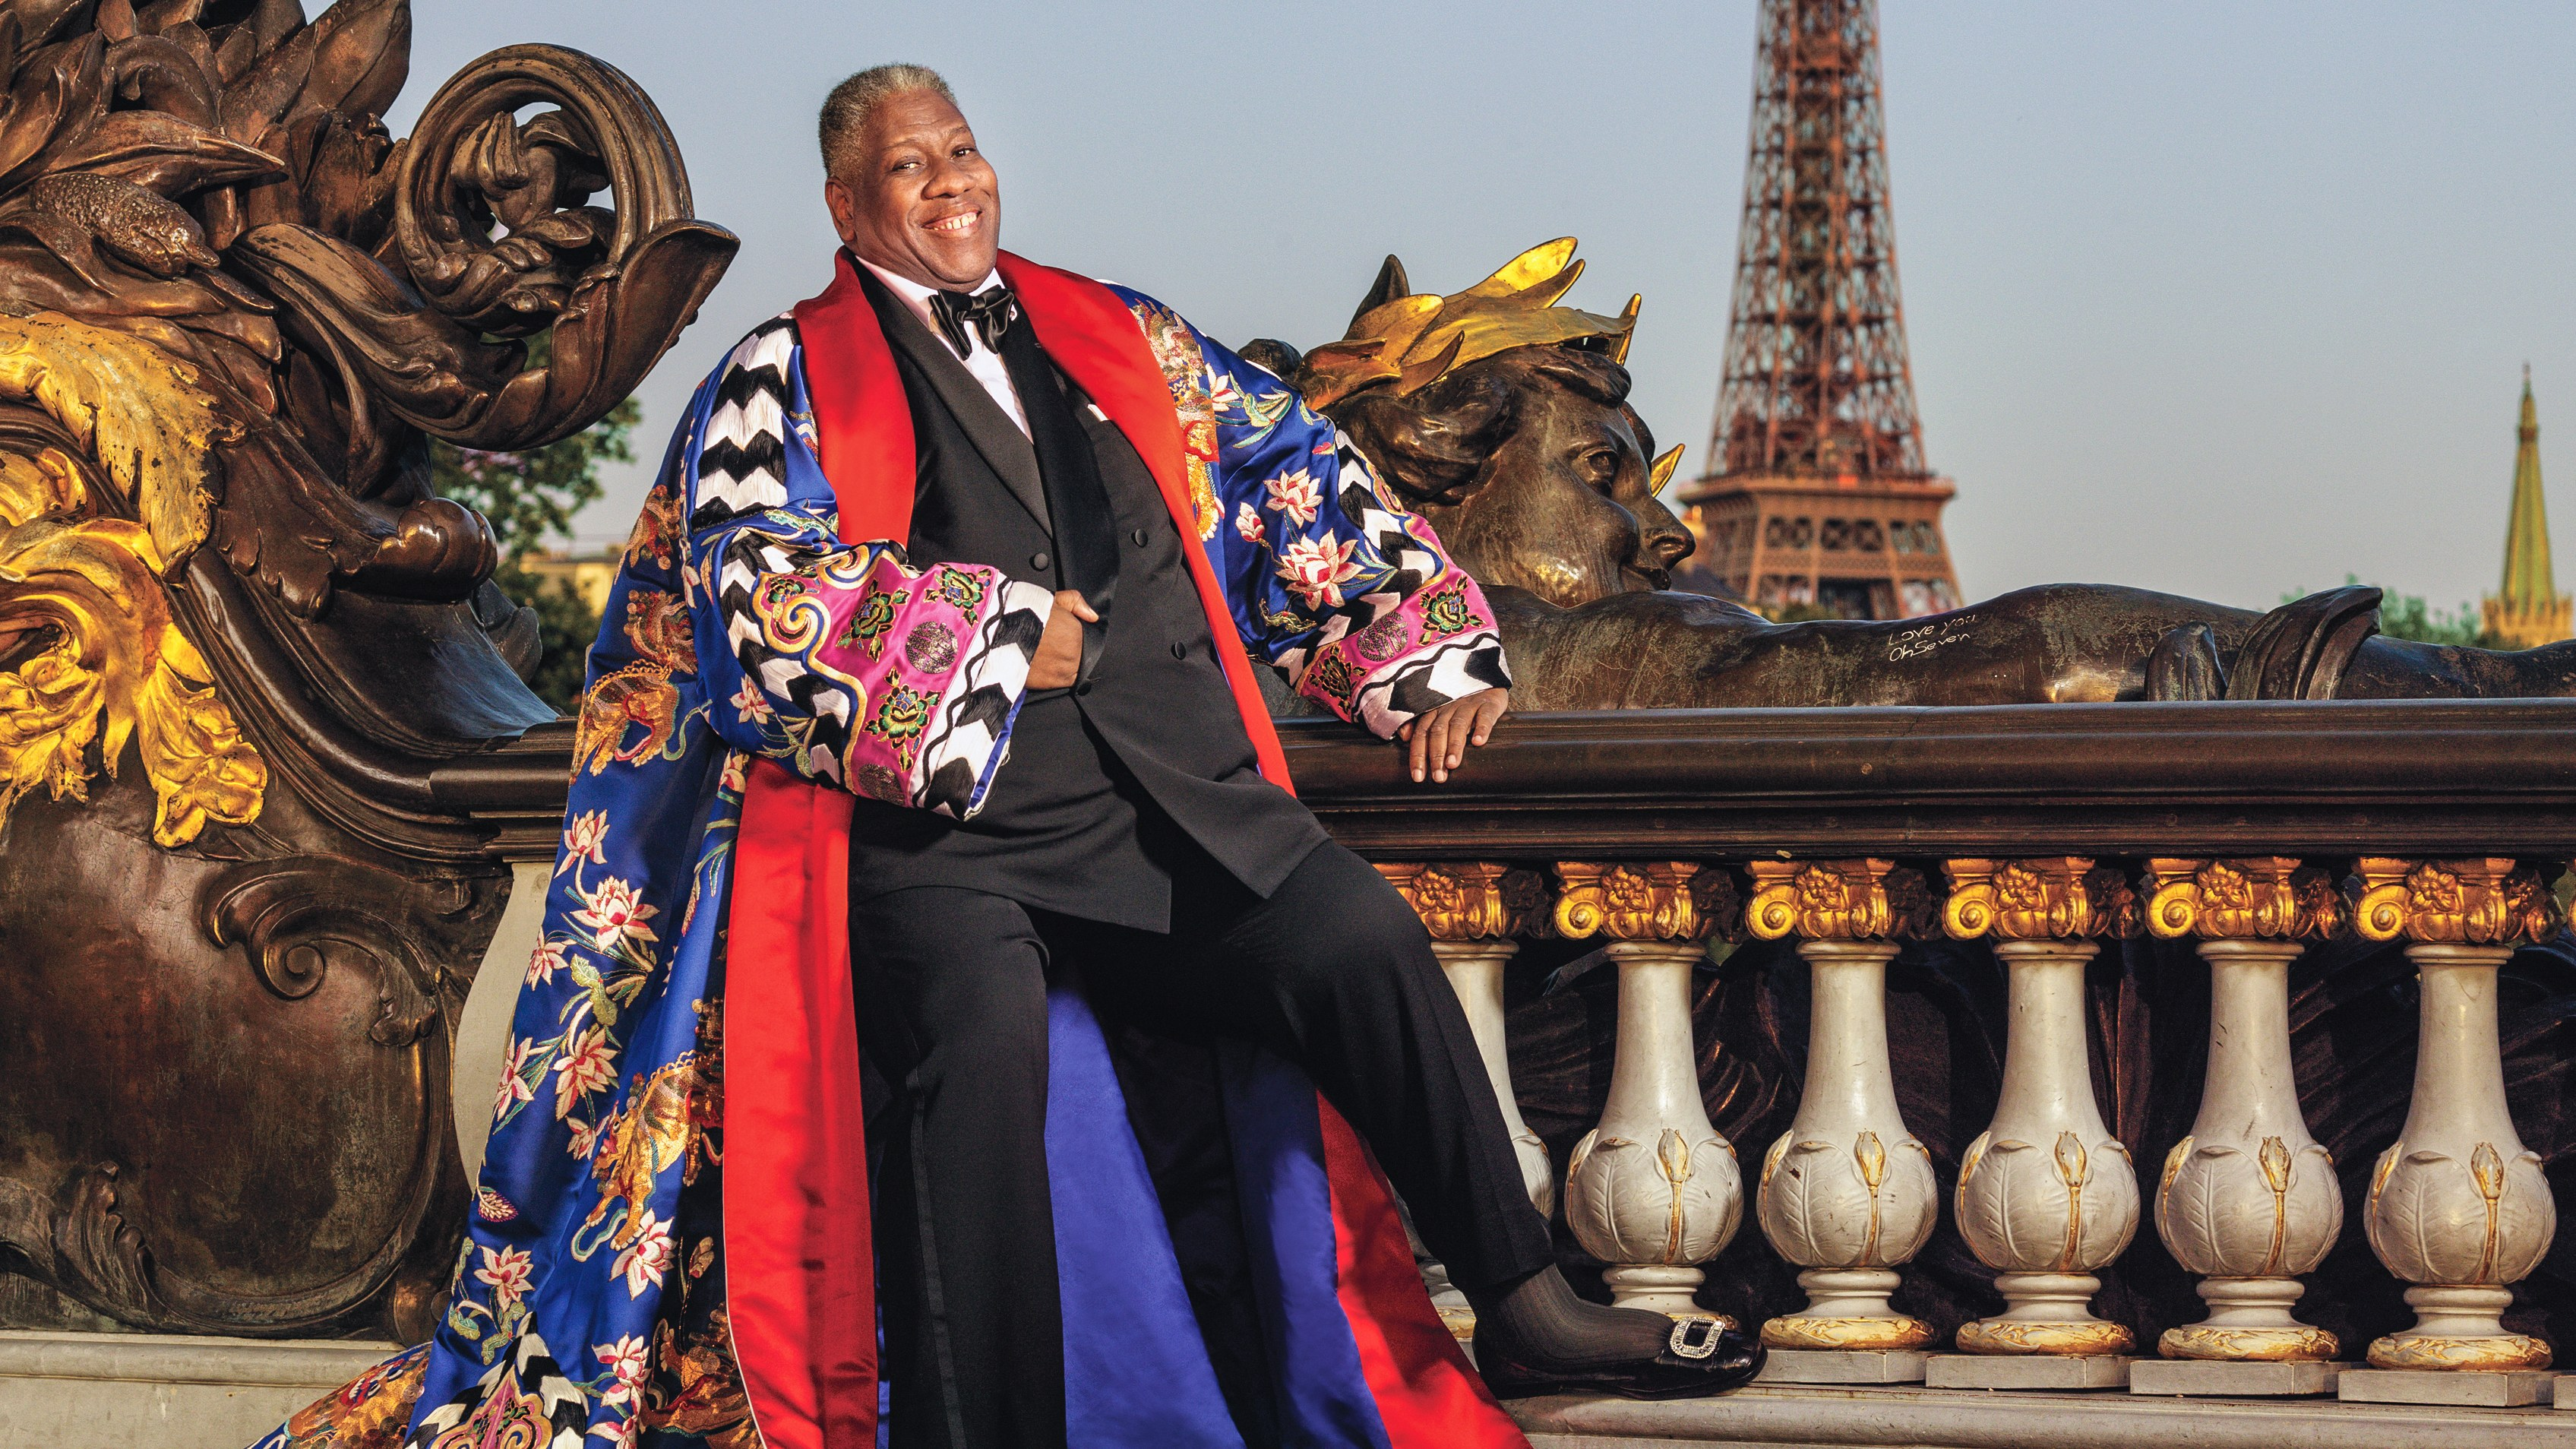 JOIN ANDRÉ LEON TALLEY AT THE WOMEN'S ASSOCIATION OF NJPAC'S SPRING LUNCHEON